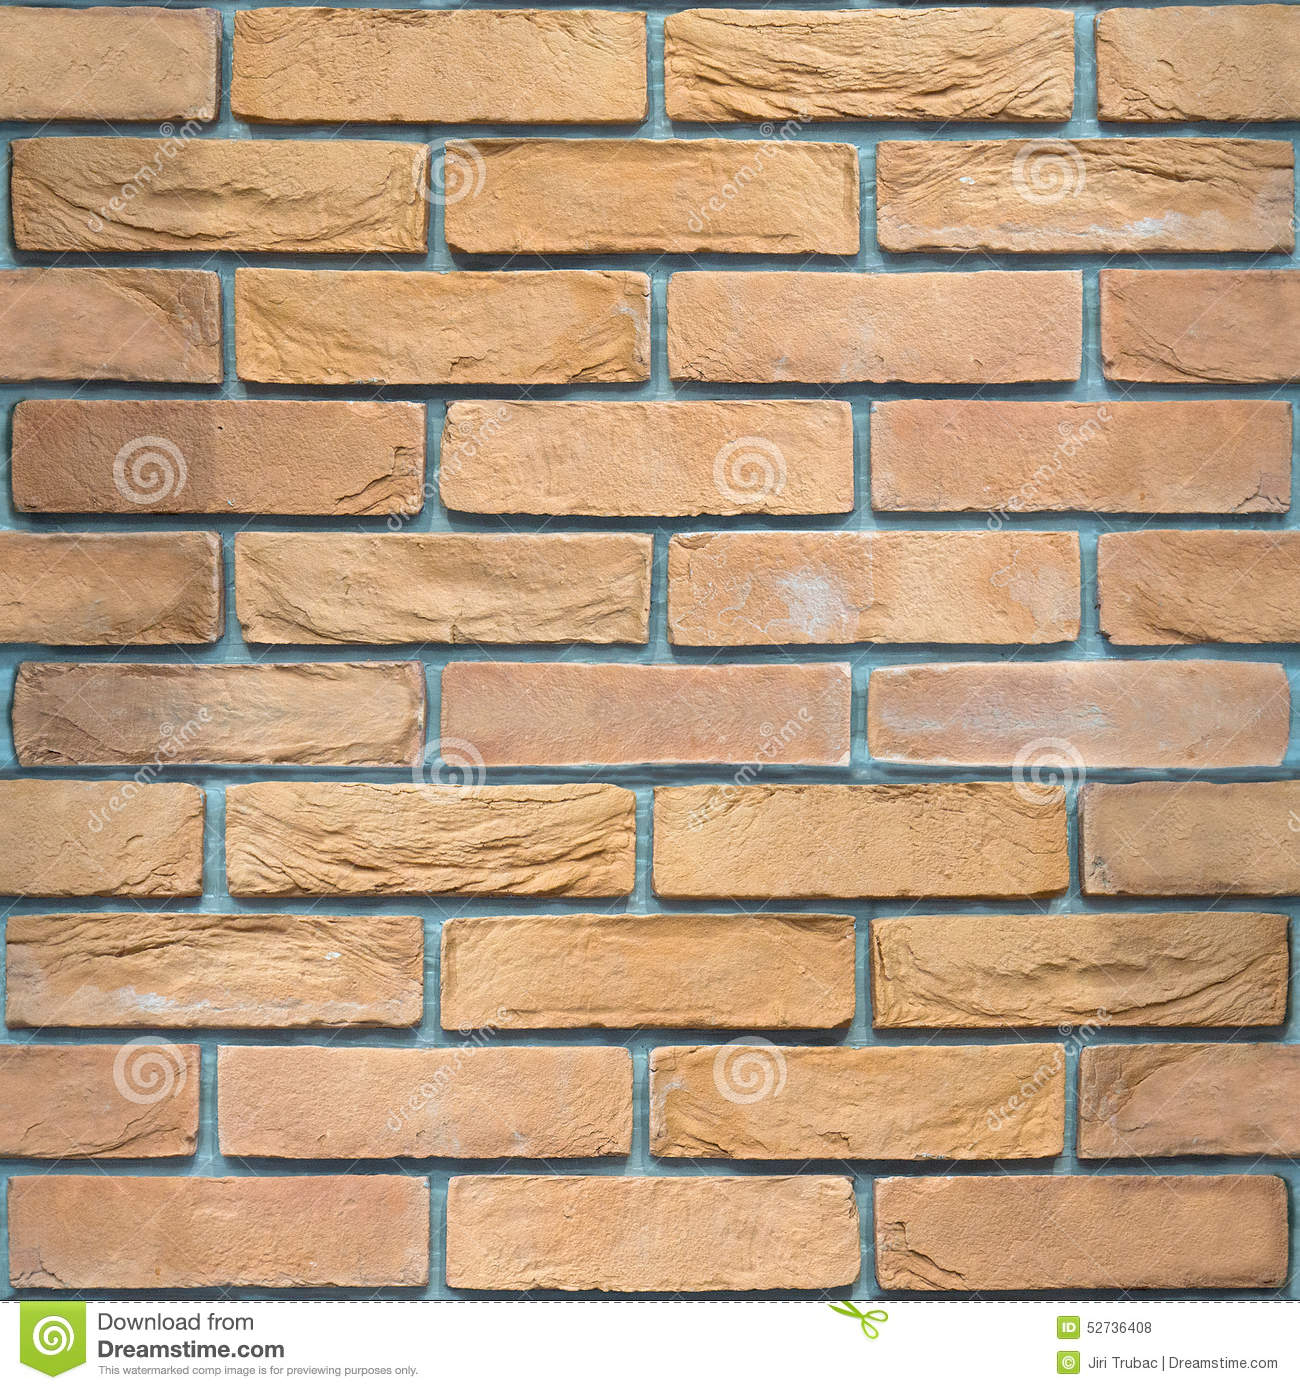 Sandstone Brick Wall Background Royaltyfree Stock Photo. How To Add A Room To Your House. Decorative Fireplace. Baseball Locker Room. Ashley Furniture Dining Room Sets Discontinued. Led Light Strips For Room. How To Decorate Small Spaces. Navy Blue Living Room Set. German Decor